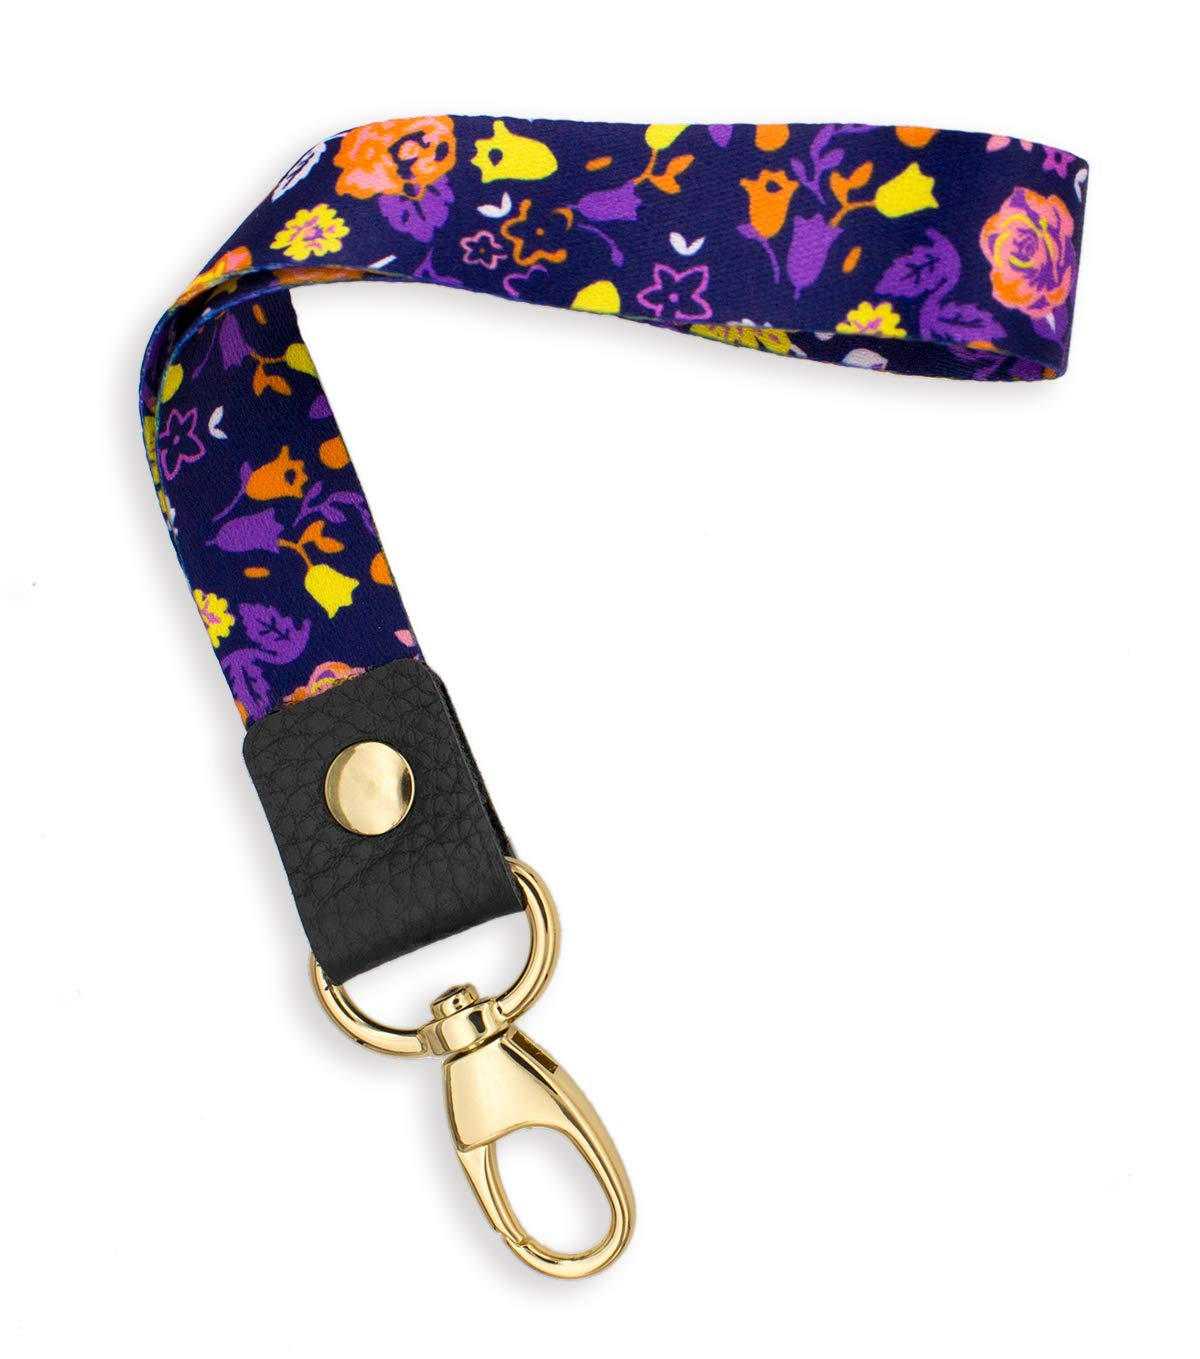 SENLLY Daisies Hand Wrist Lanyard Premium Quality Wristlet Strap with Metal Clasp and Genuine Leather, for Key Chain, Camera, Cell Mobile Phone, Charms, Lightweight Items etc SENLLY-GS-PL